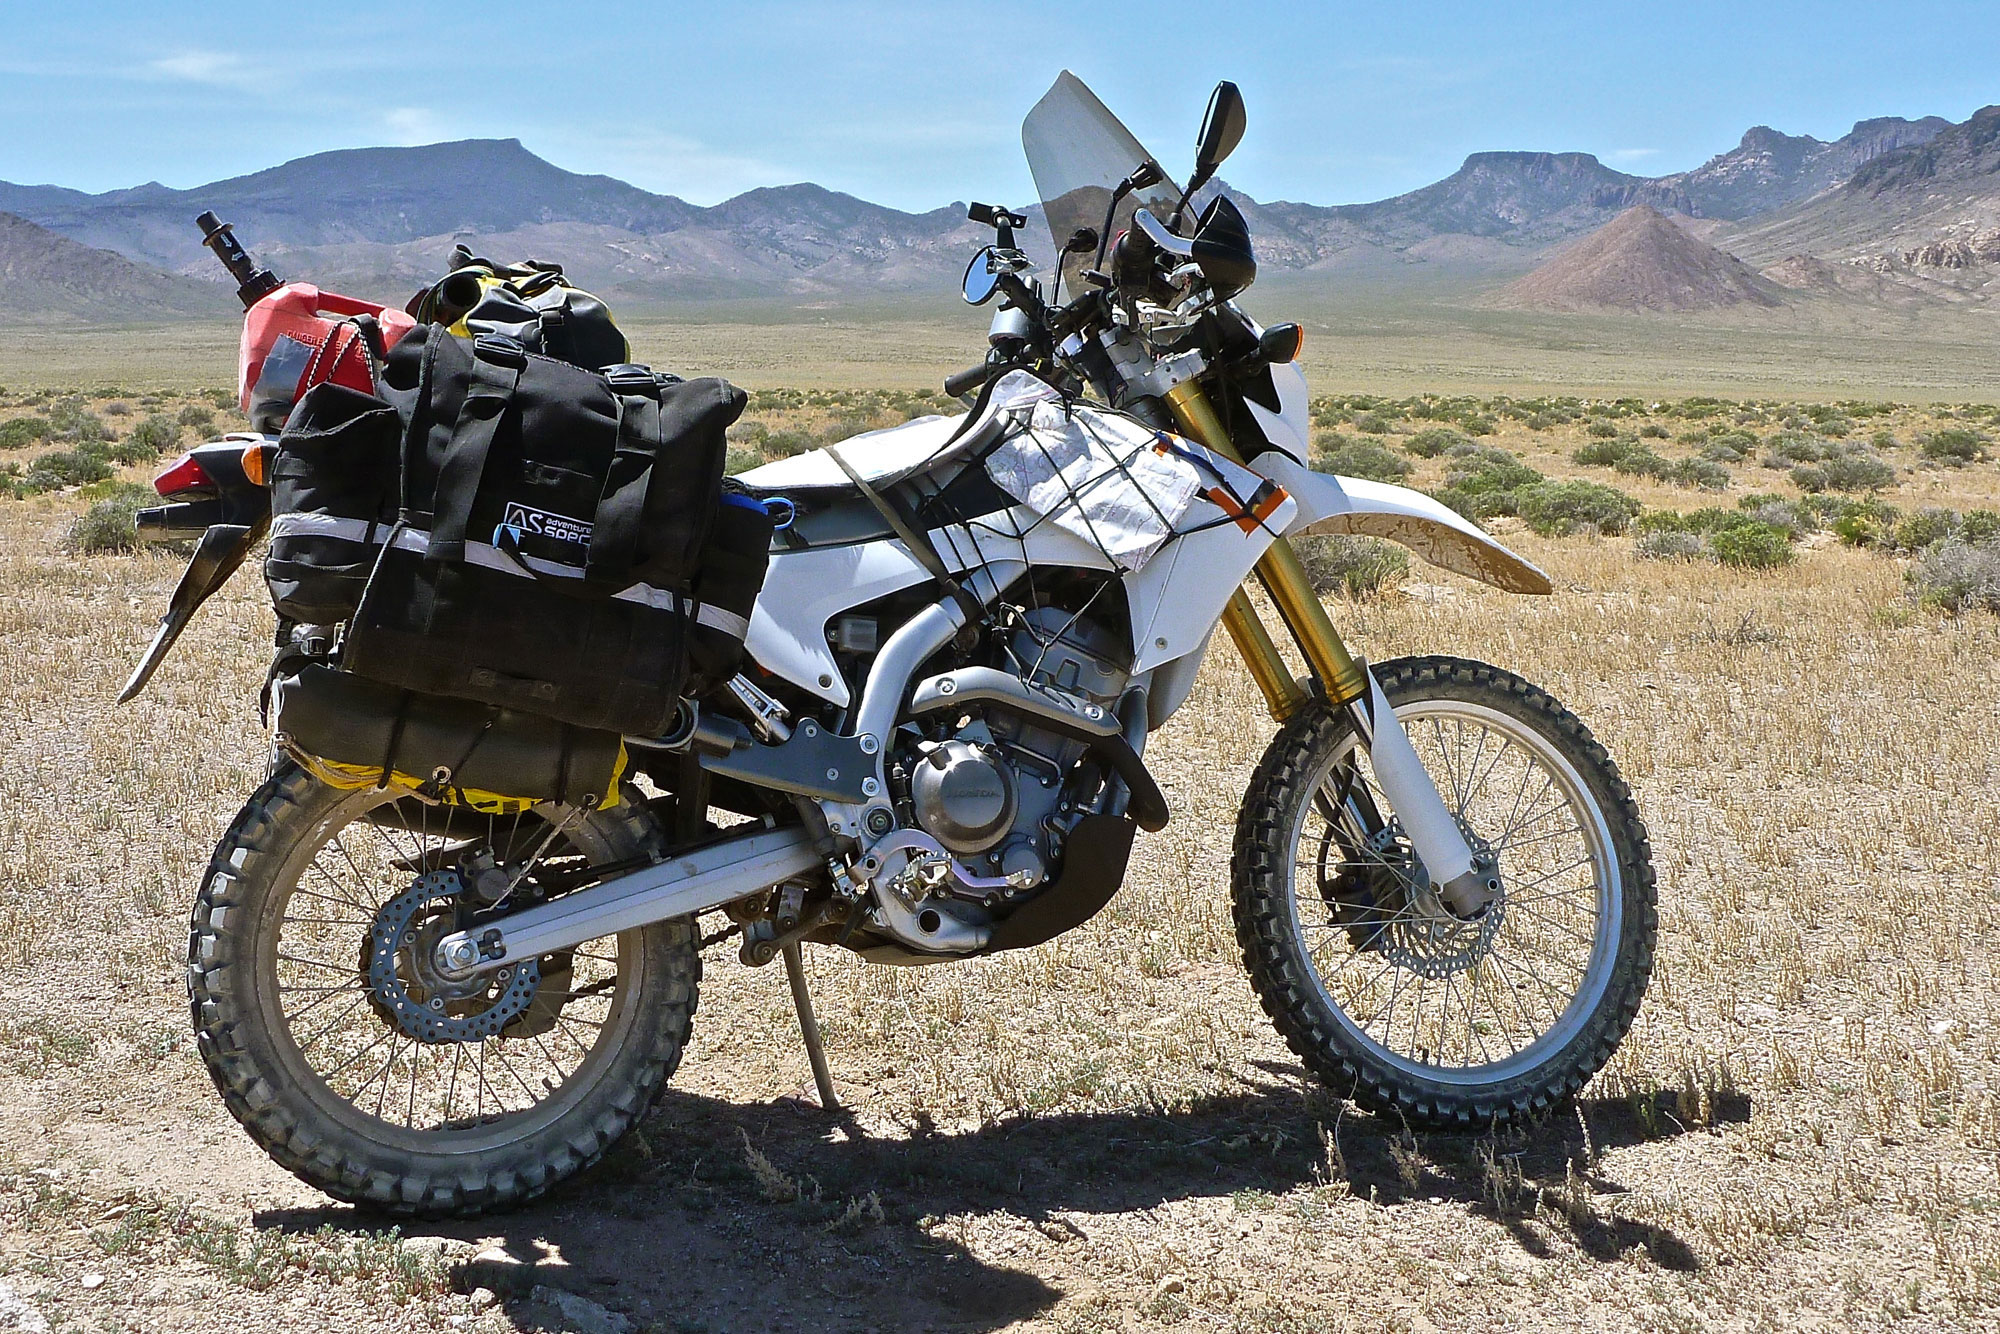 Honda Nc700x Wiring Diagram Tested Trail Tech Vapor And Voyager